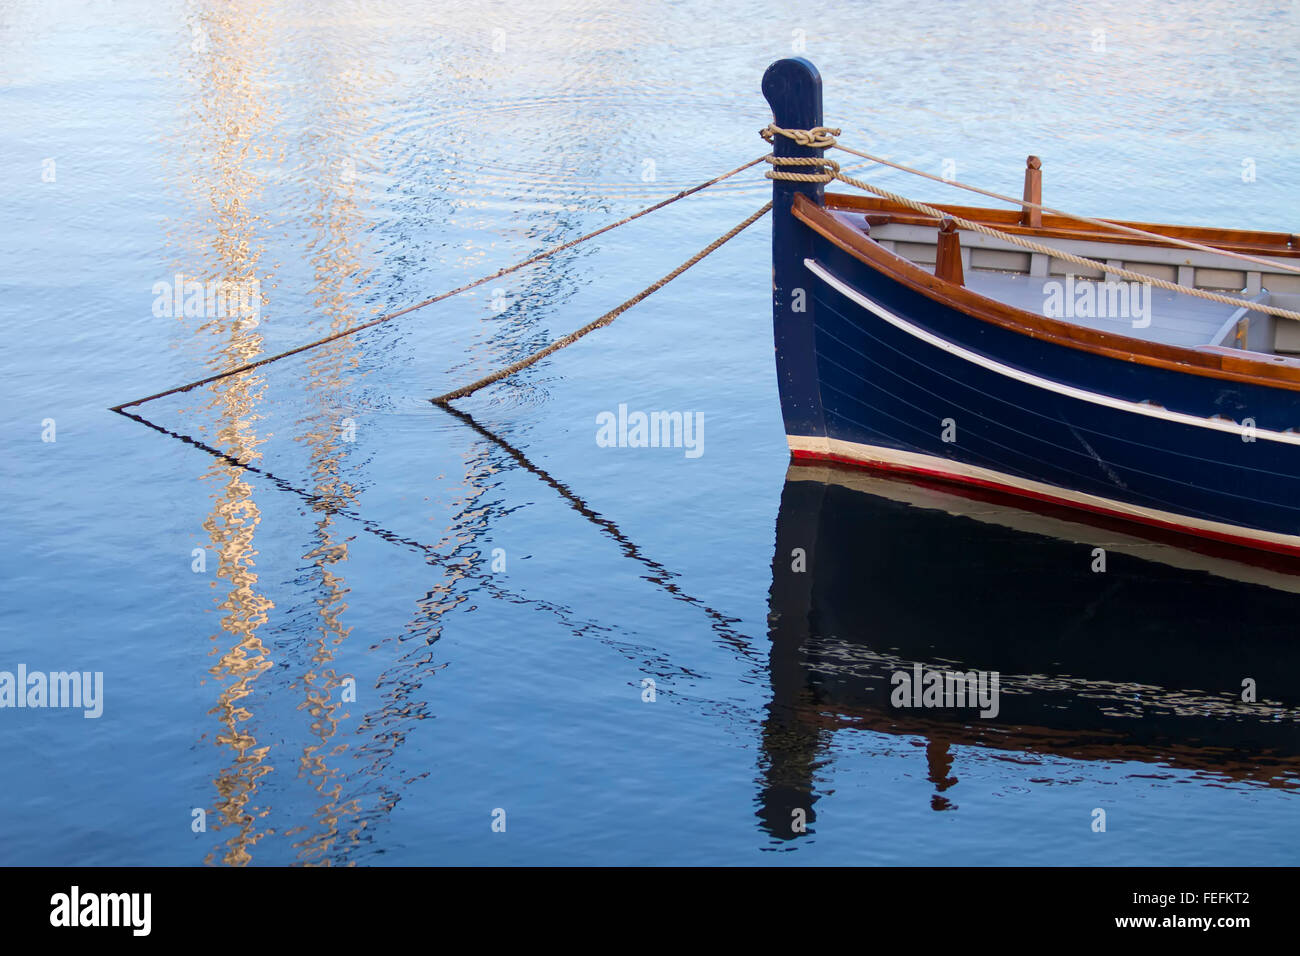 Anchored boat - Stock Image